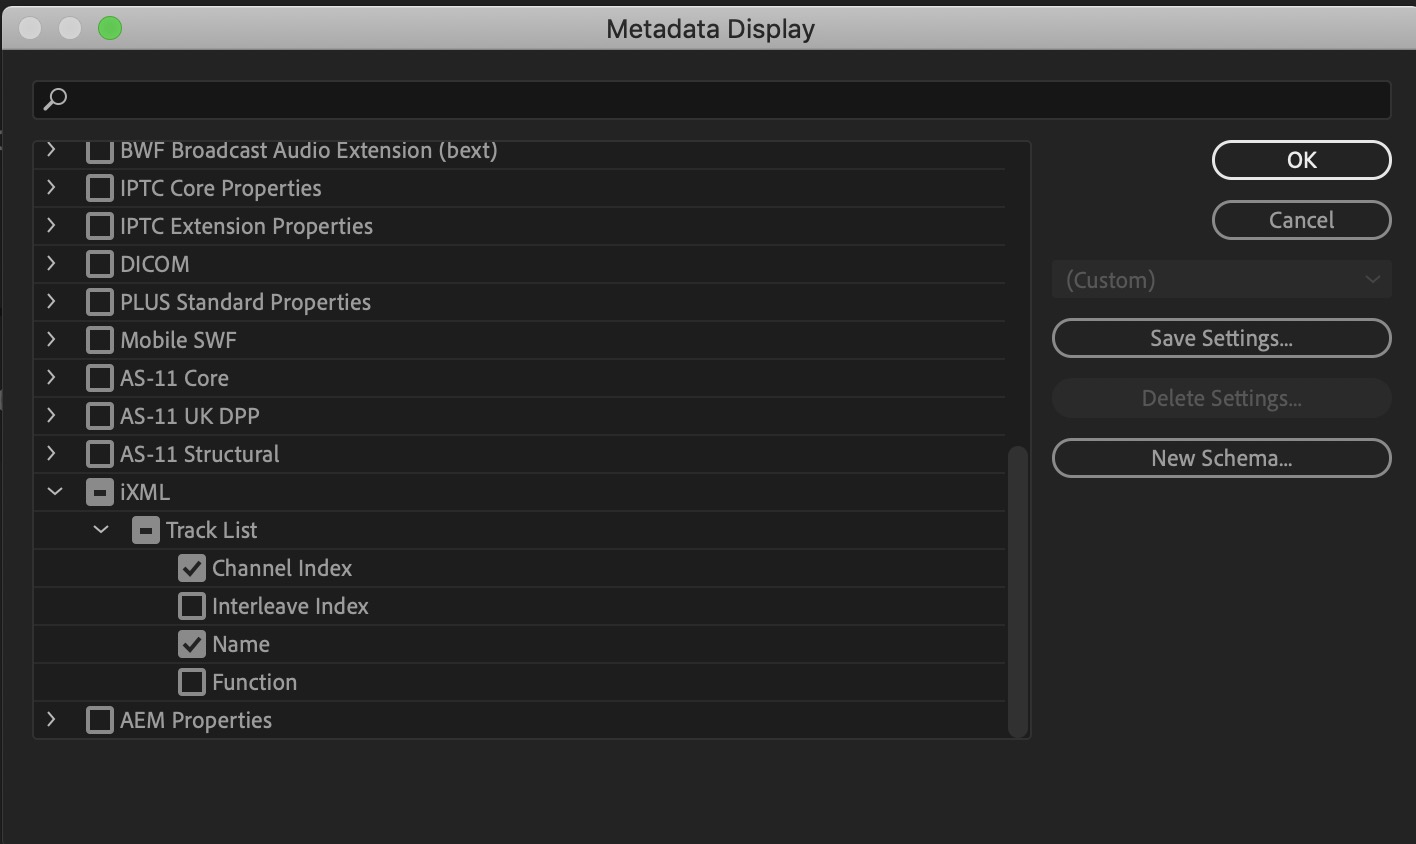 Adobe and Avid need to support iXML metadata for audio channels in the timeline 12